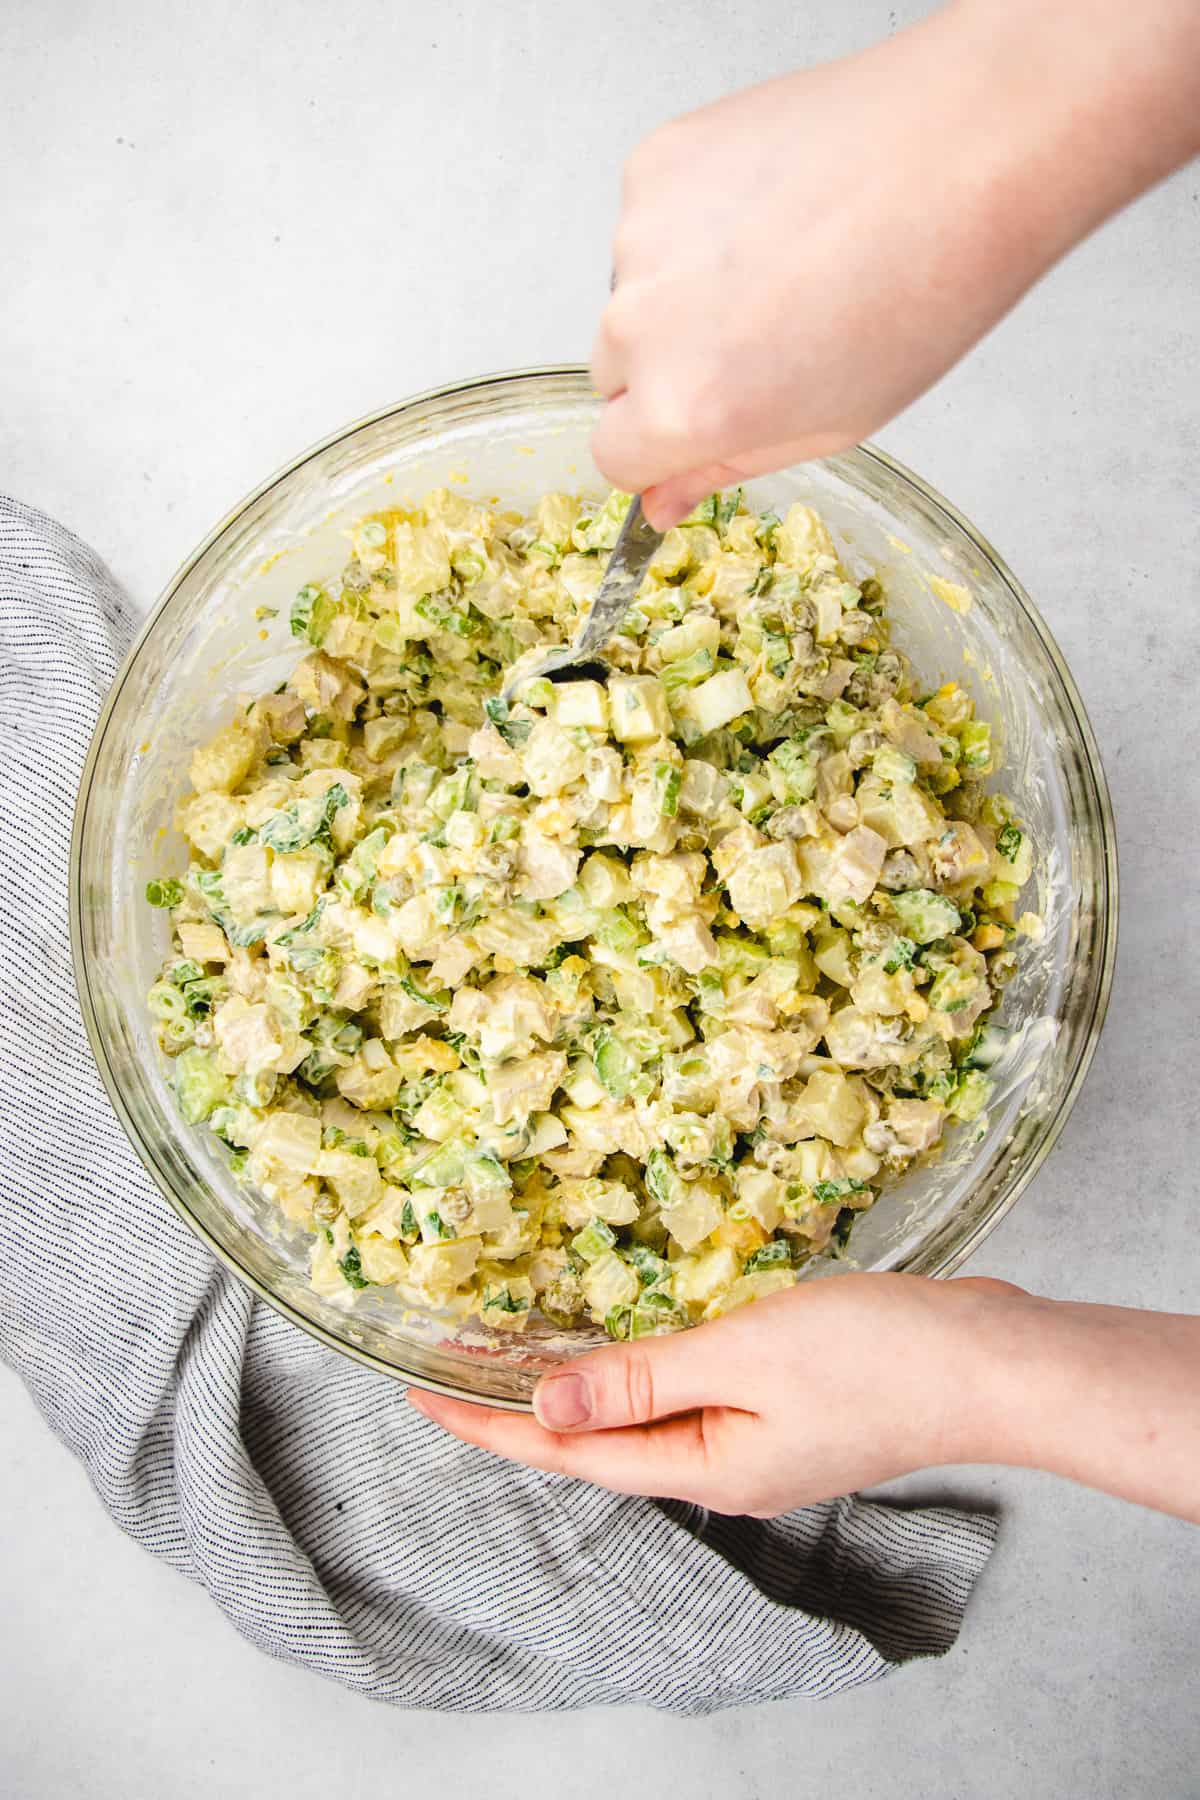 Mixing Olivie salad in a clear bowl.